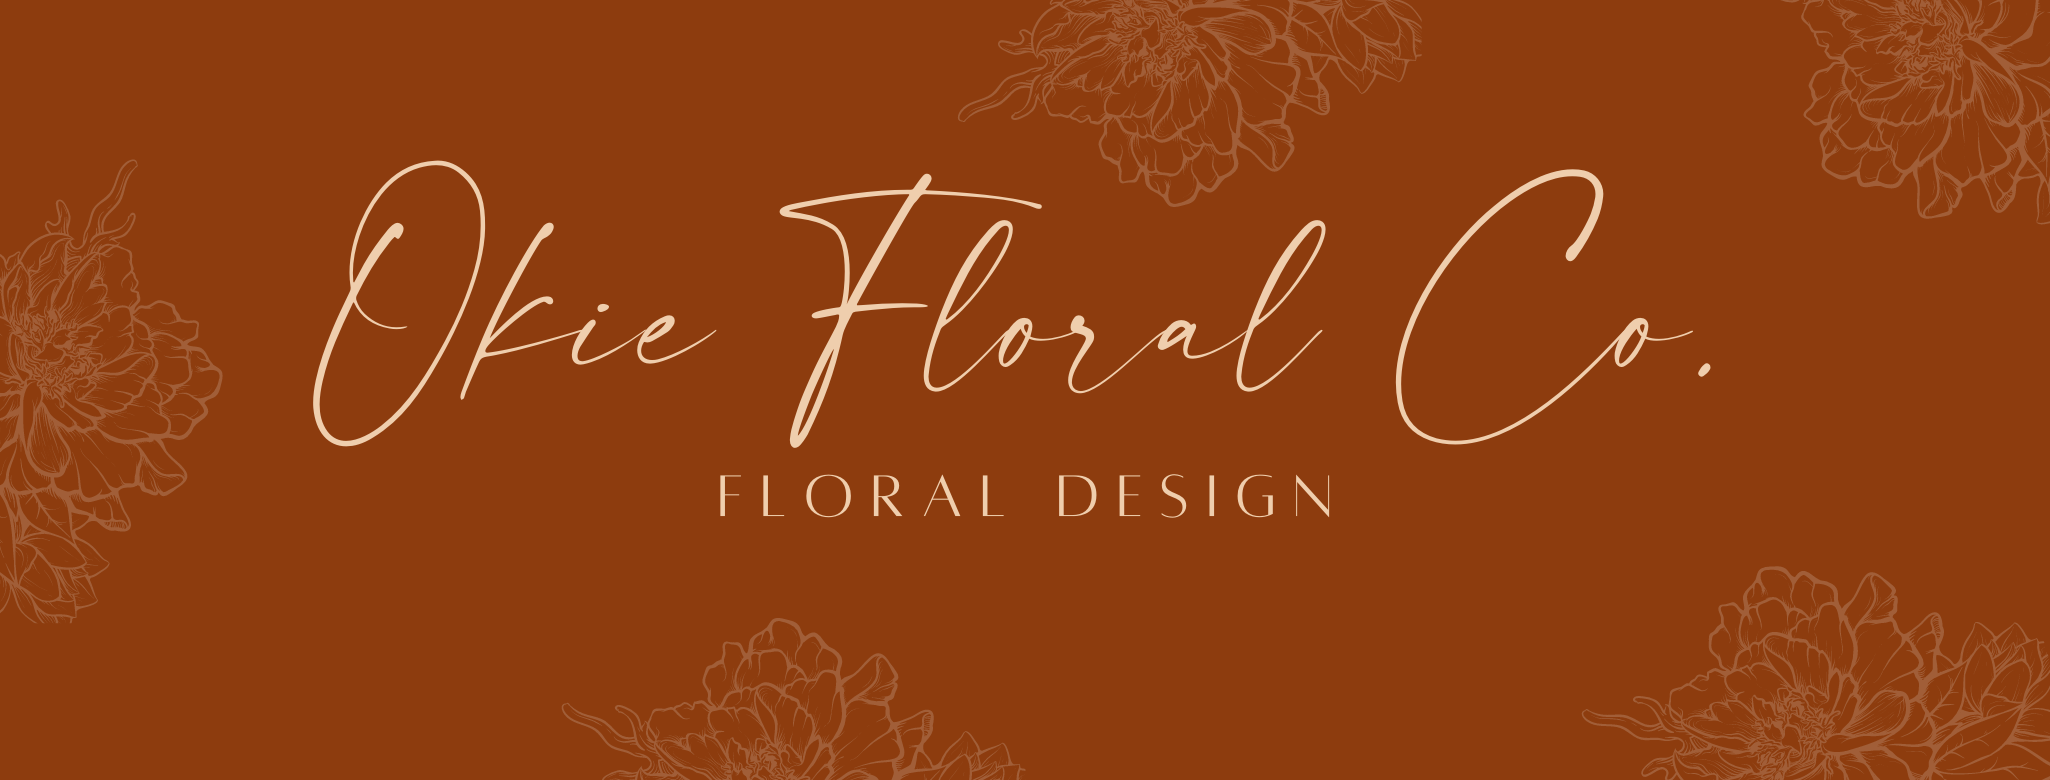 Okie Floral Co